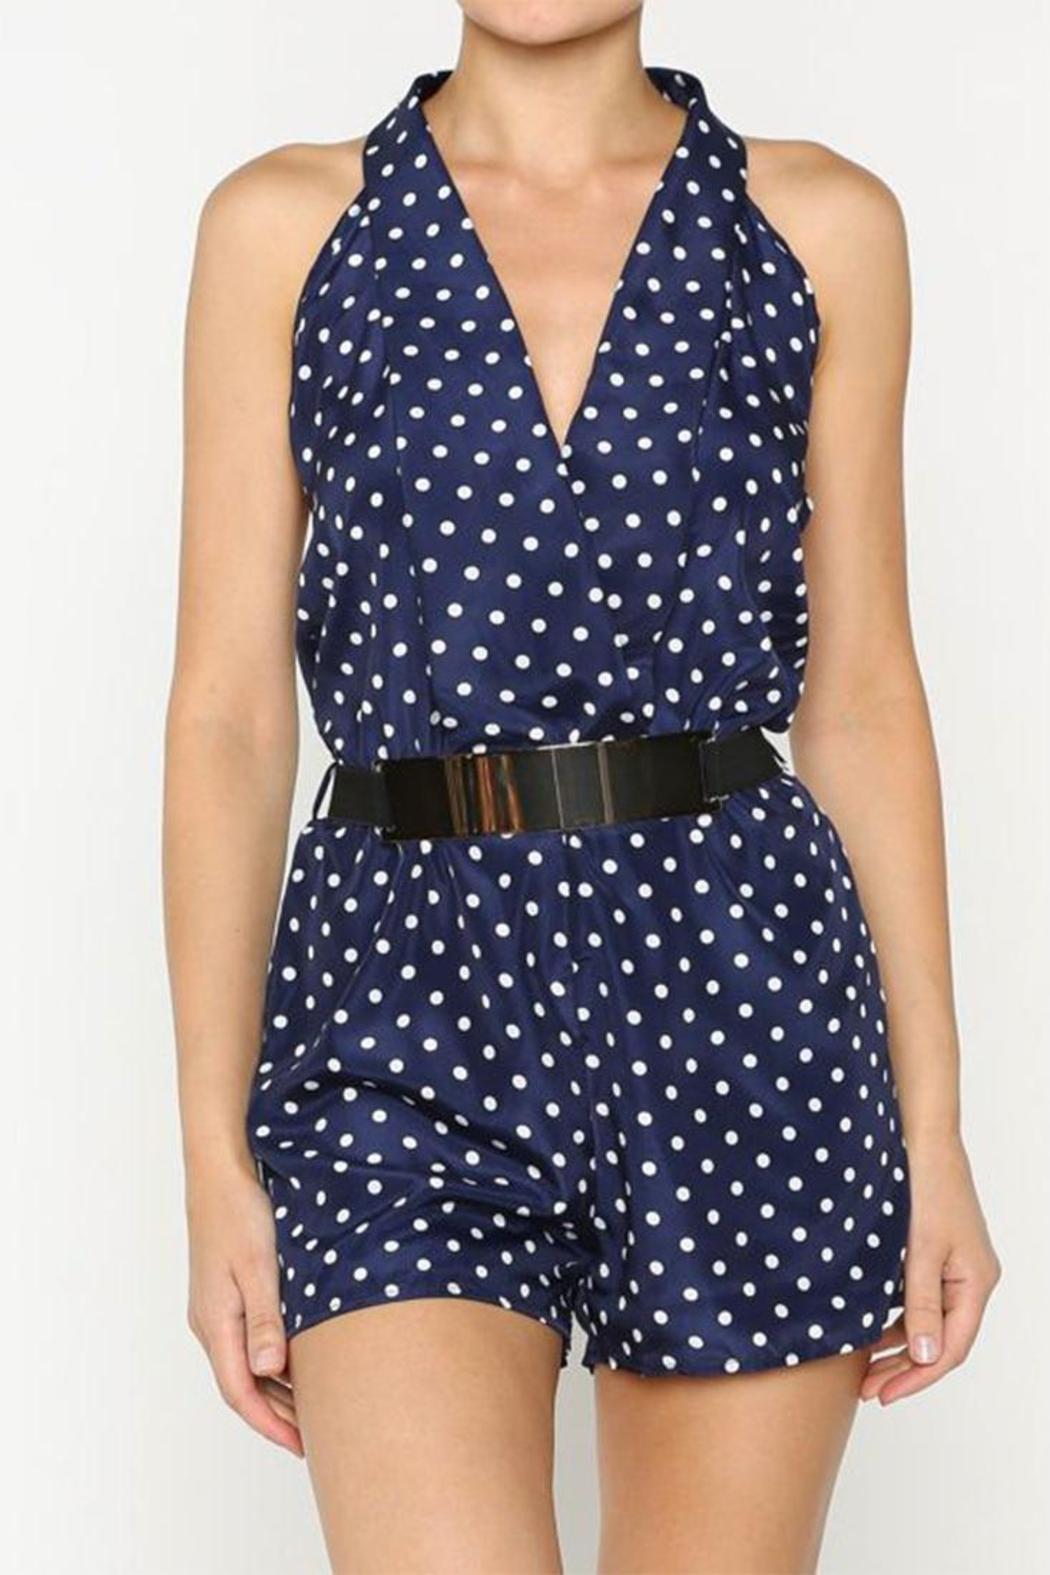 Virginia Wolf Polka Dot Romper from Wyckoff by Maluka u2014 Shoptiques